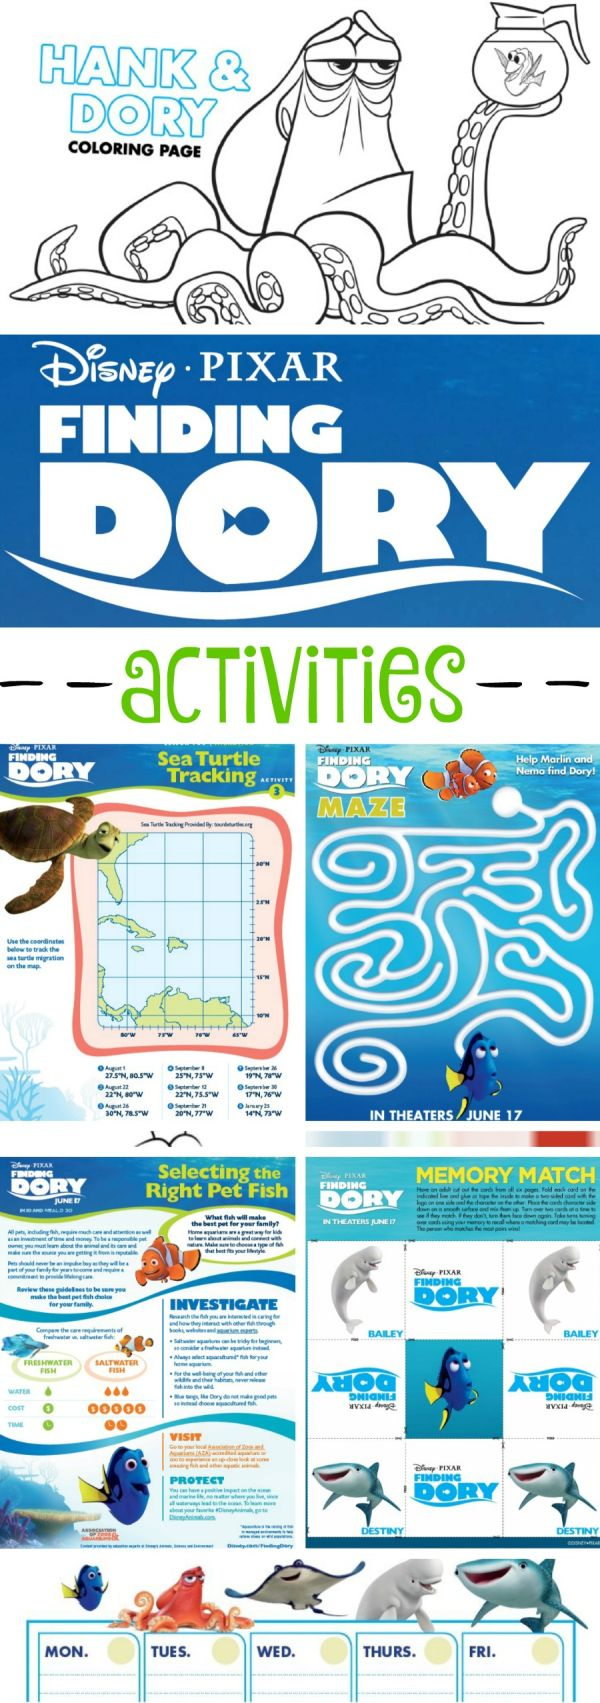 0cean coloring pages - Finding Dory Lesson Plans And Fun Activity Pages For Kids